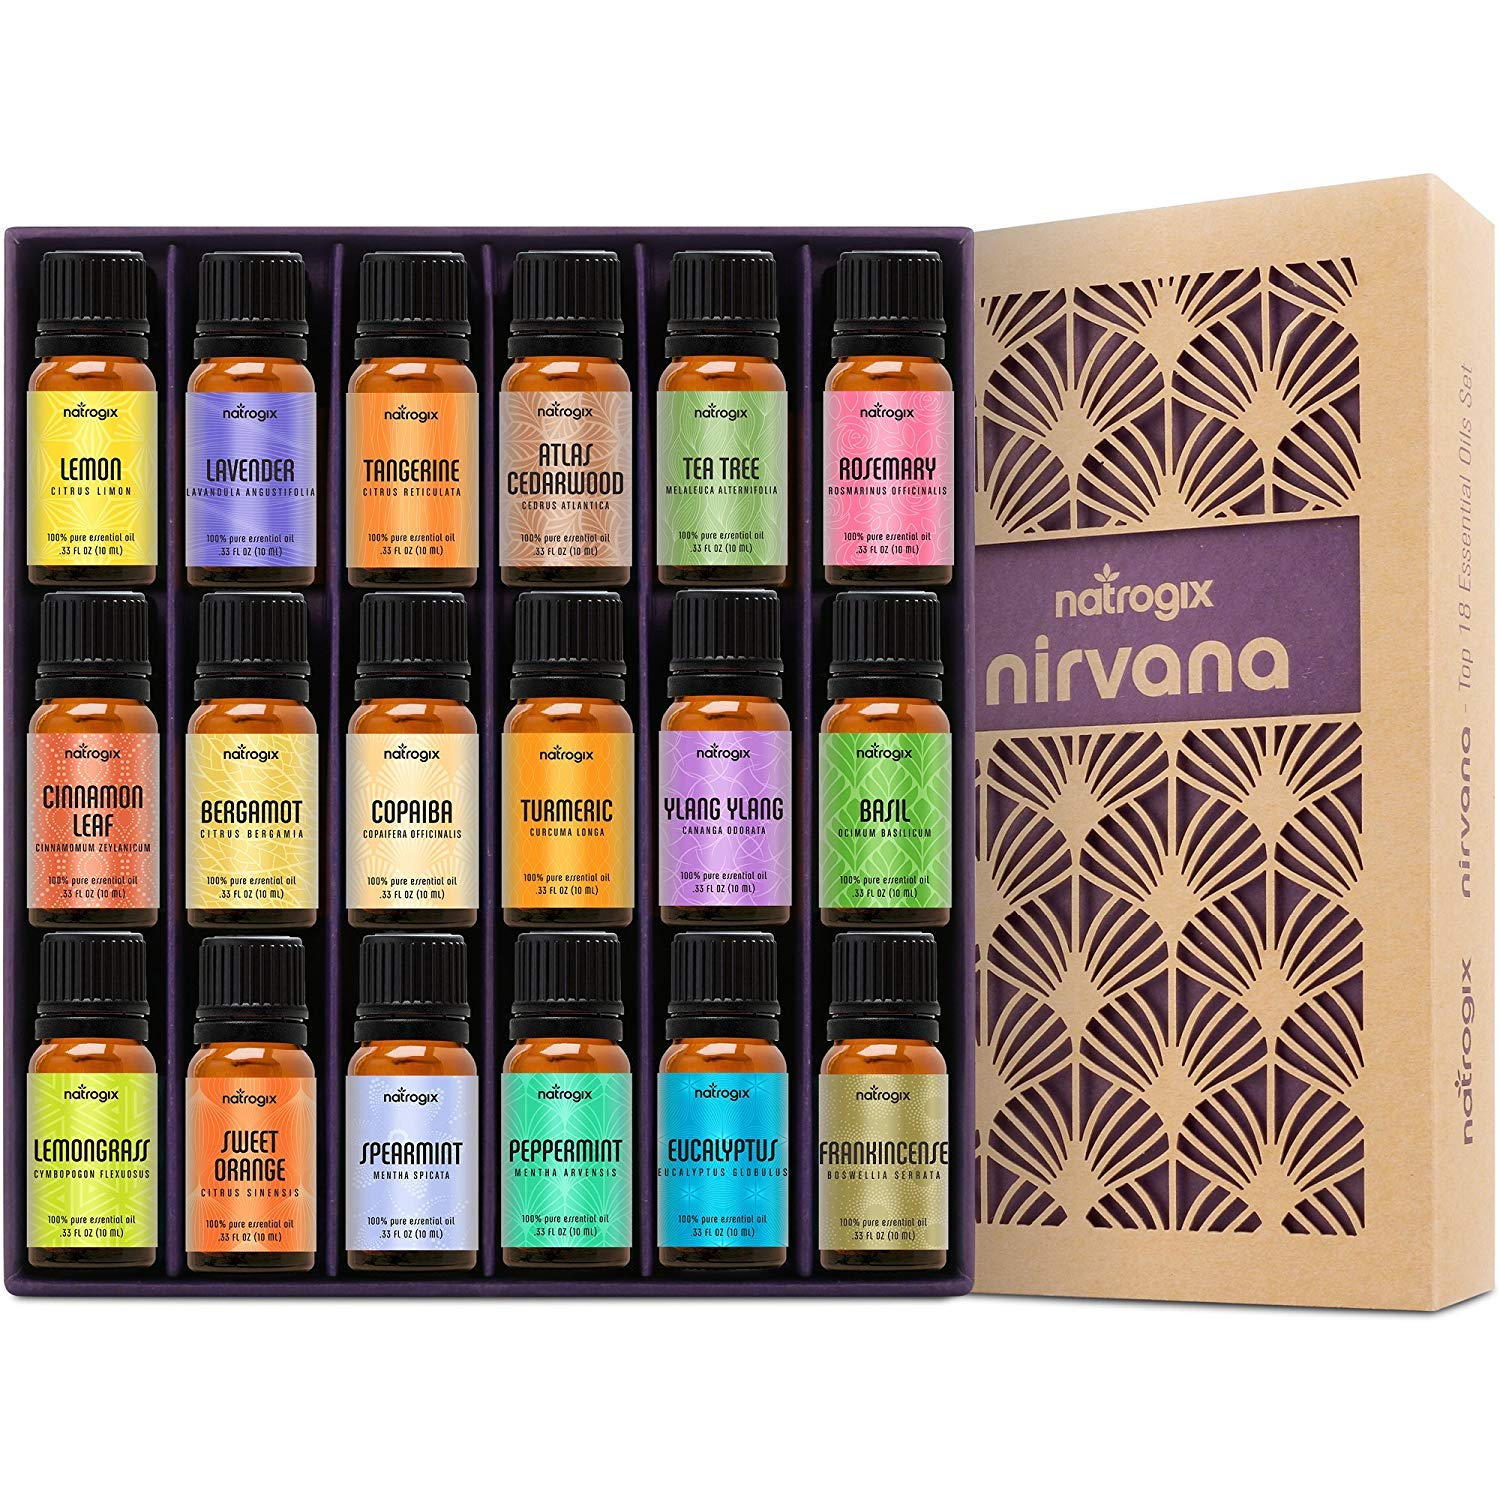 Natrogix Nirvana  | Top 18 Essential Oil Set |  $34.99